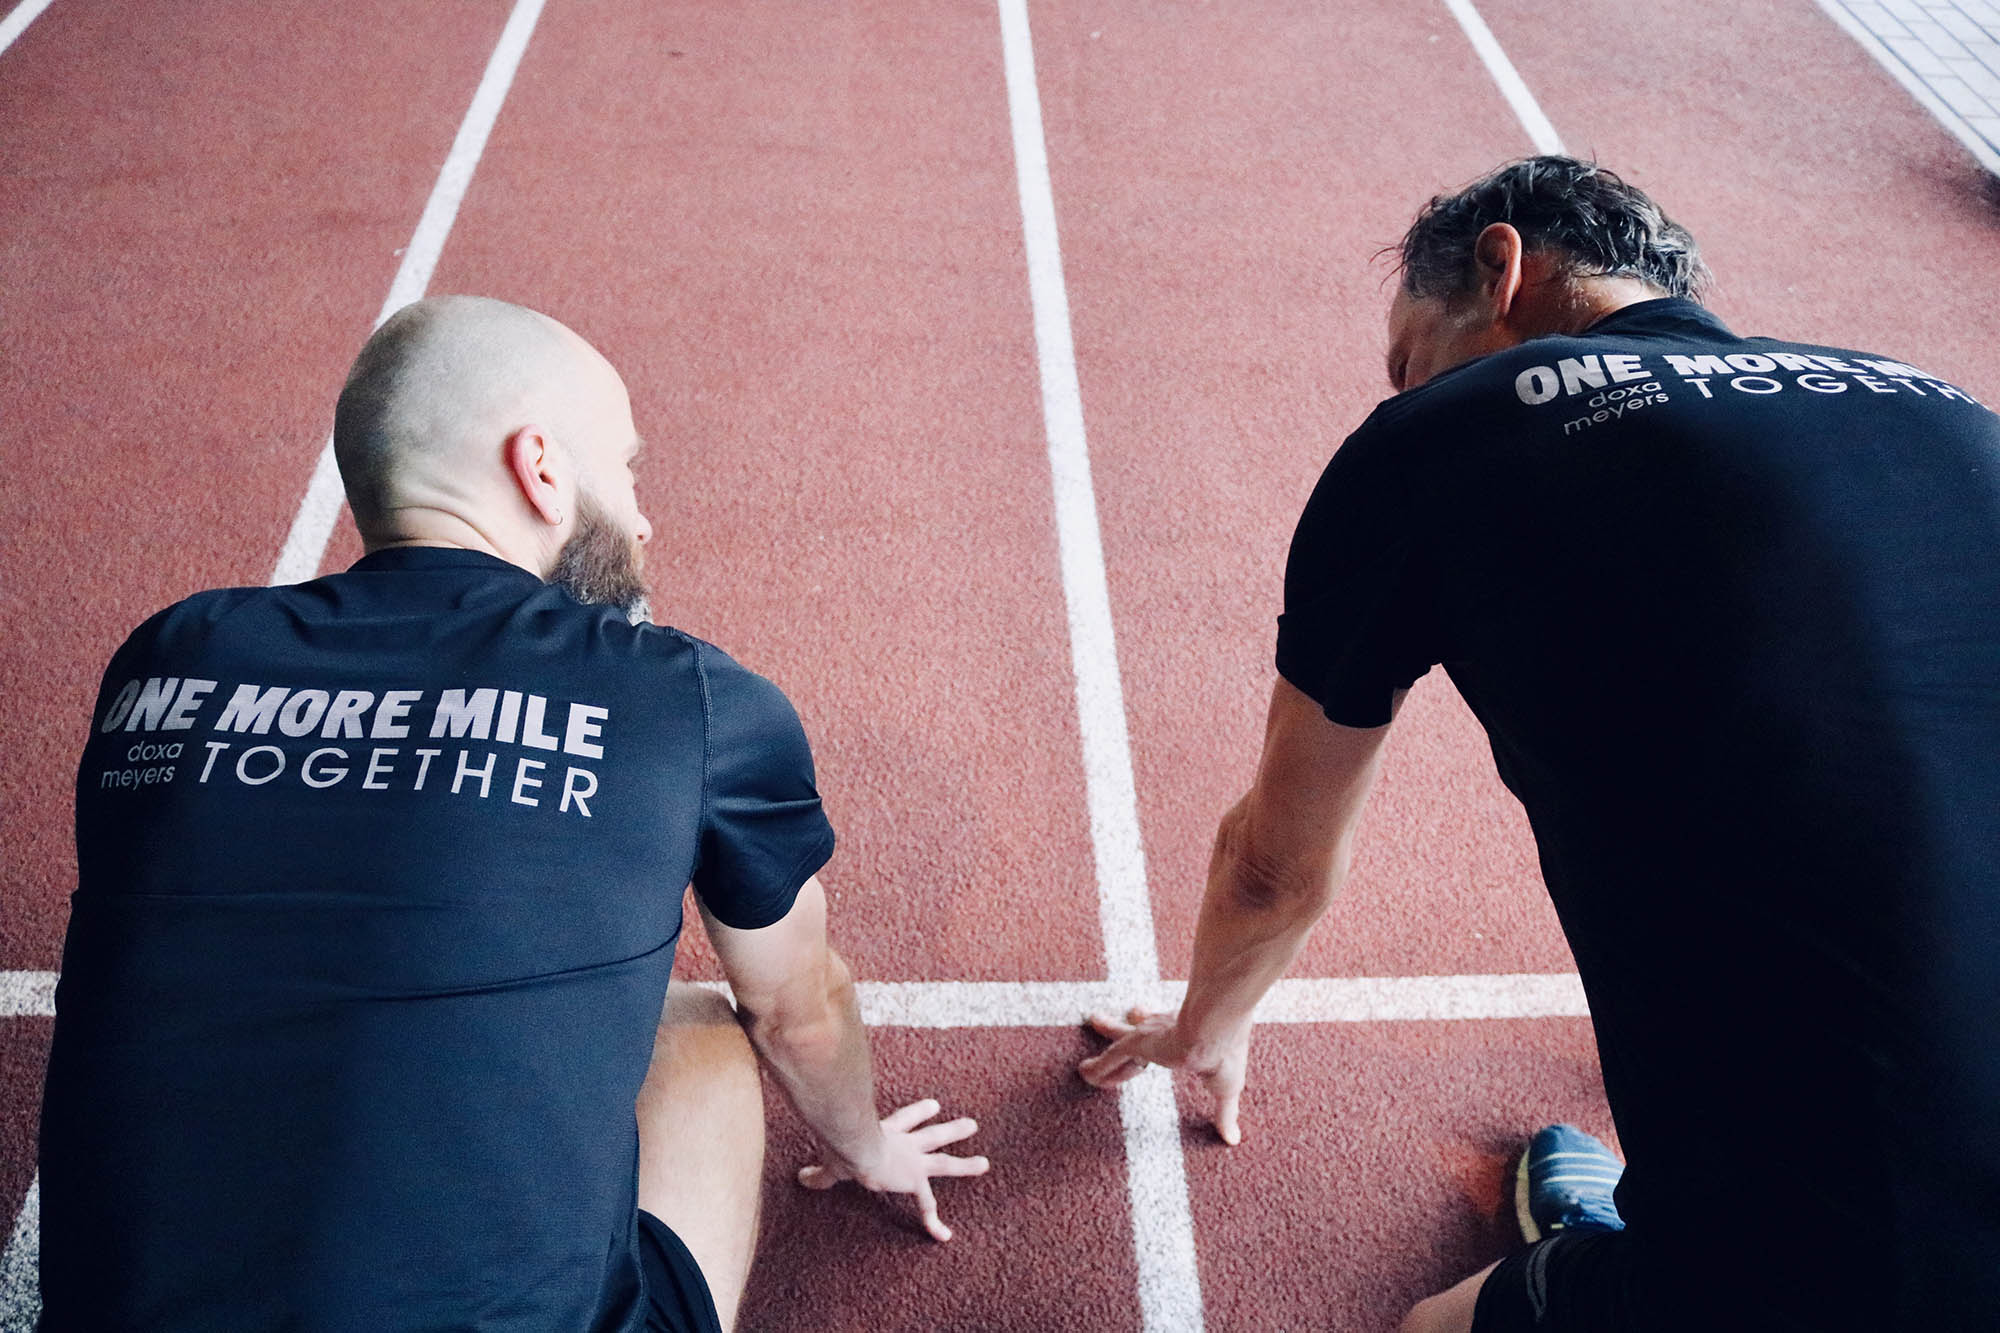 DOXA RUN - MEYERS - ONE MORE MILE TOGETHER CHARITY PROJECT